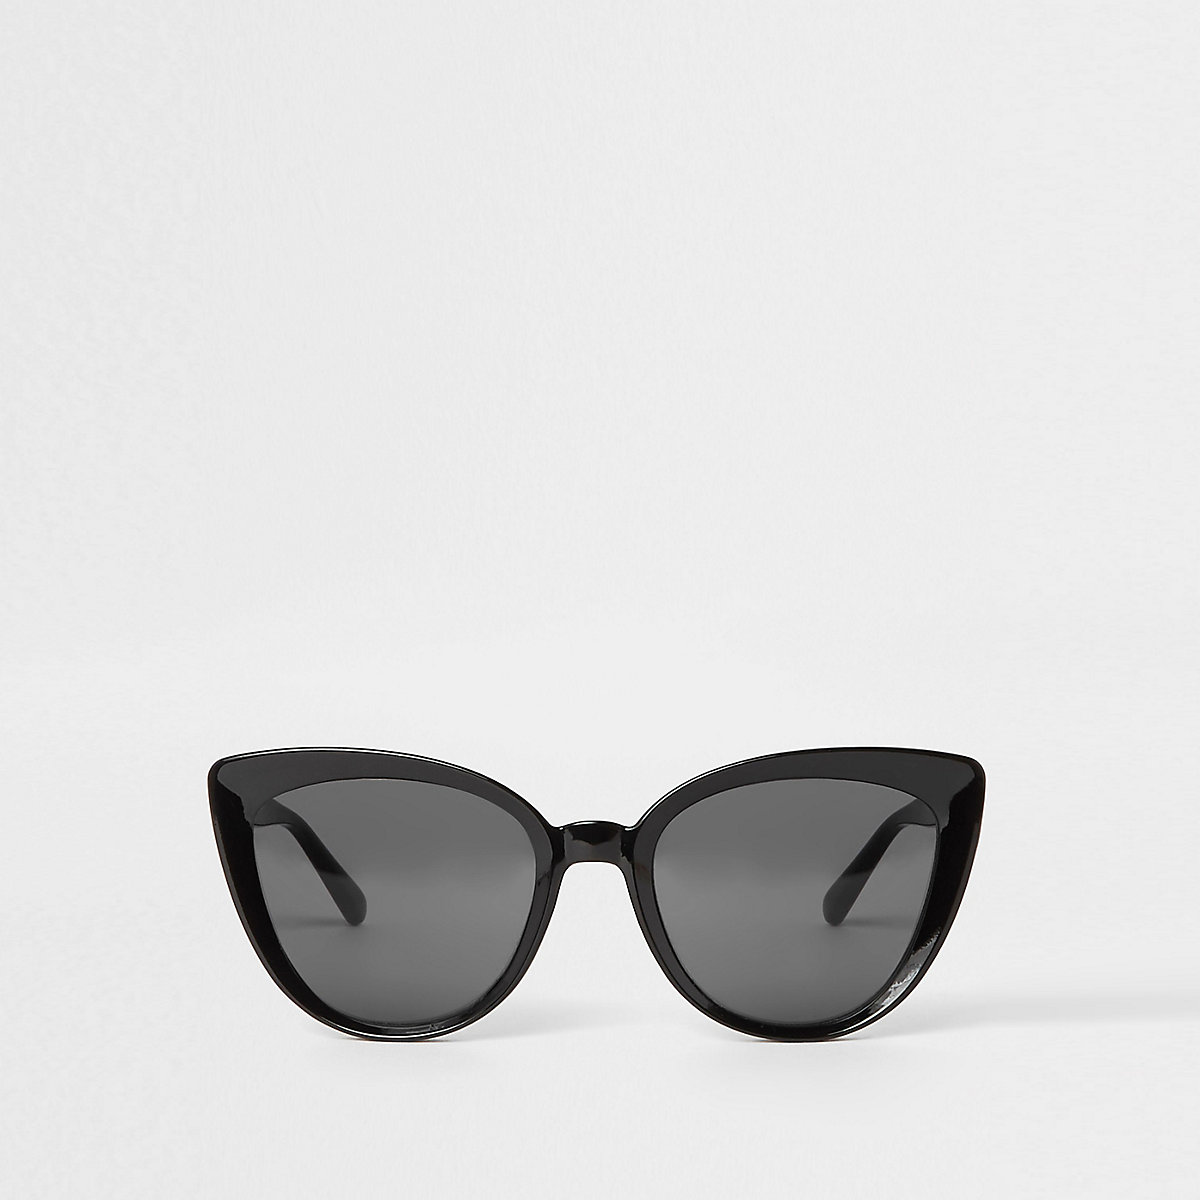 Black smoke lens cat eye sunglasses